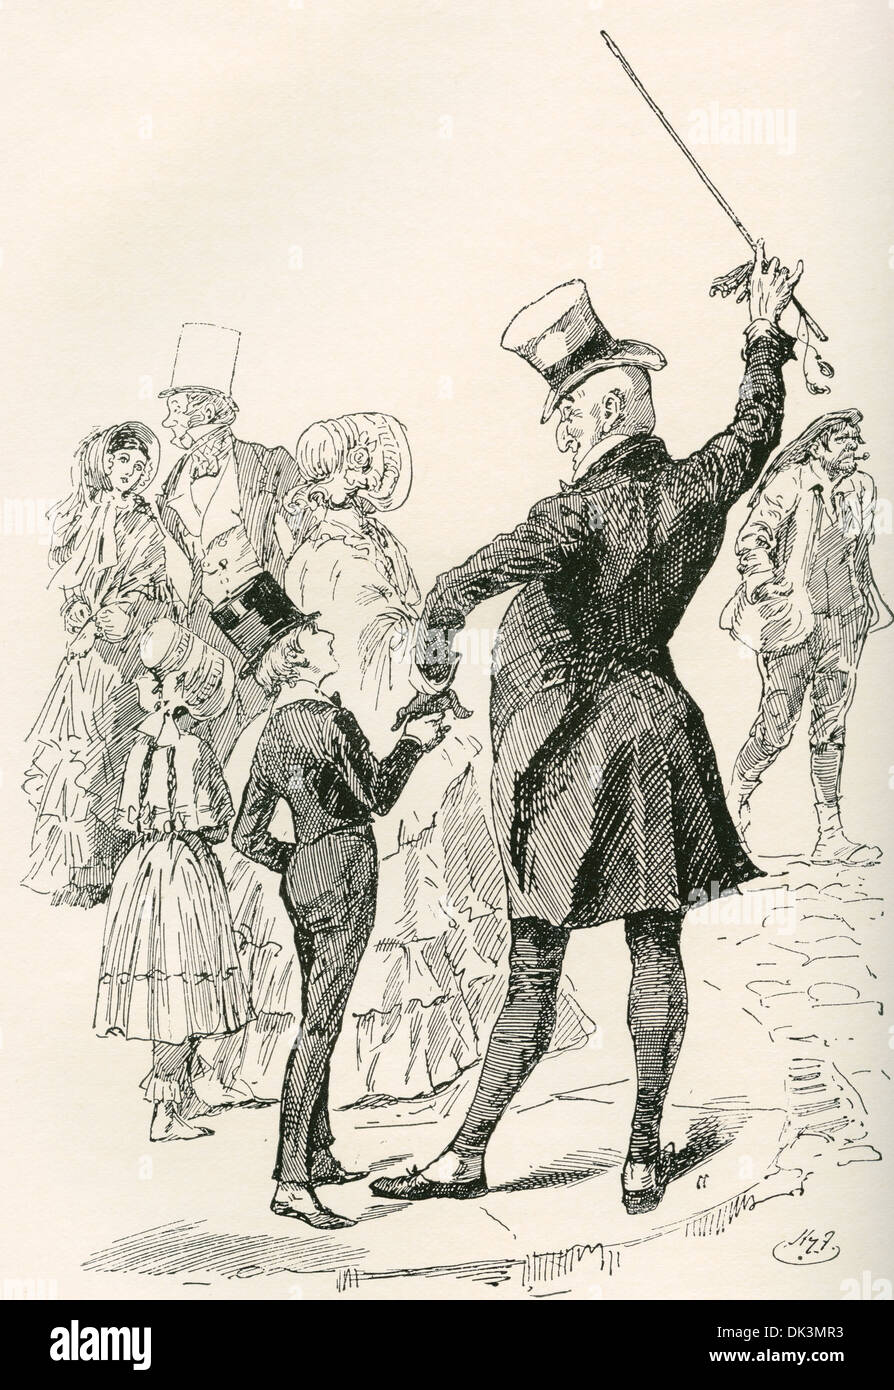 characters in david copperfield online exhibition charles dickens  david copperfield illustration by harry furniss for the charles mr micawber takes david home illustration by